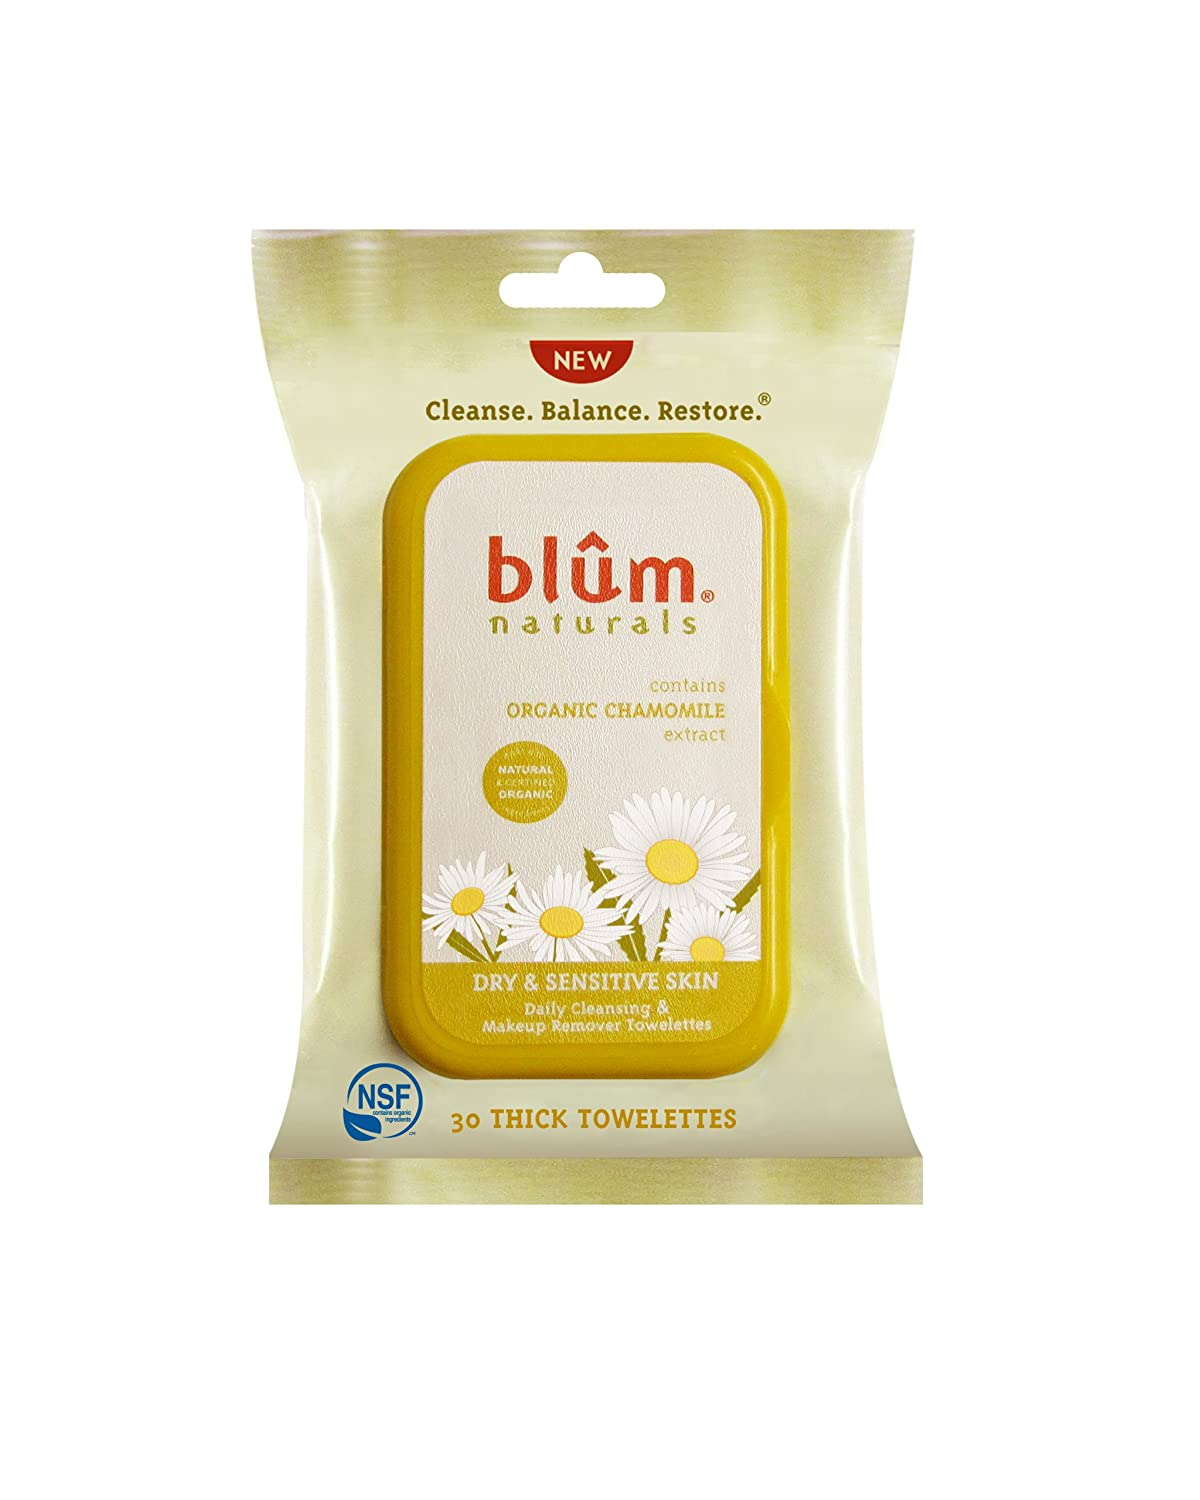 Blum Naturals Dry and Sensitive Skin Daily Cleansing Towelettes with Chamomile, 30 Count